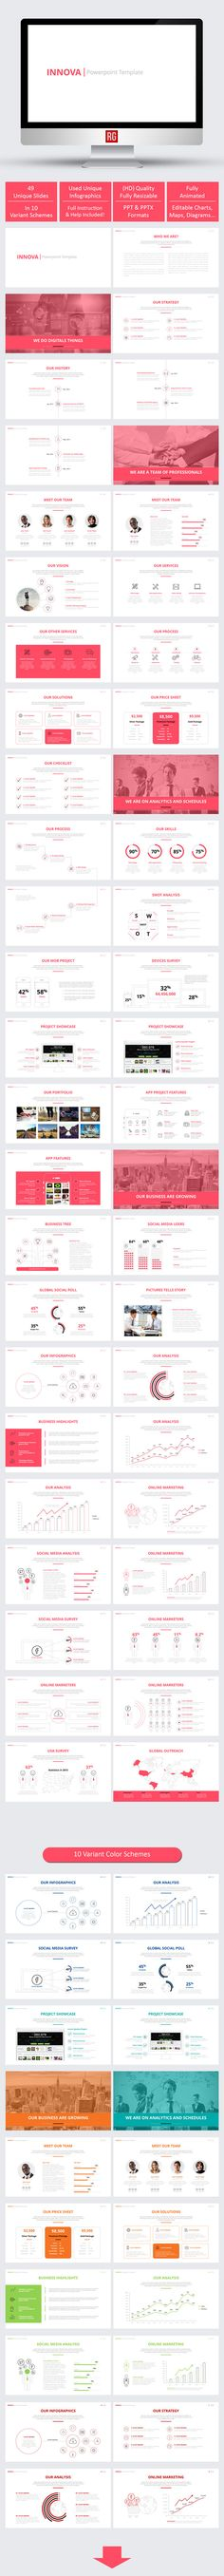 Innova Powerpoint Template